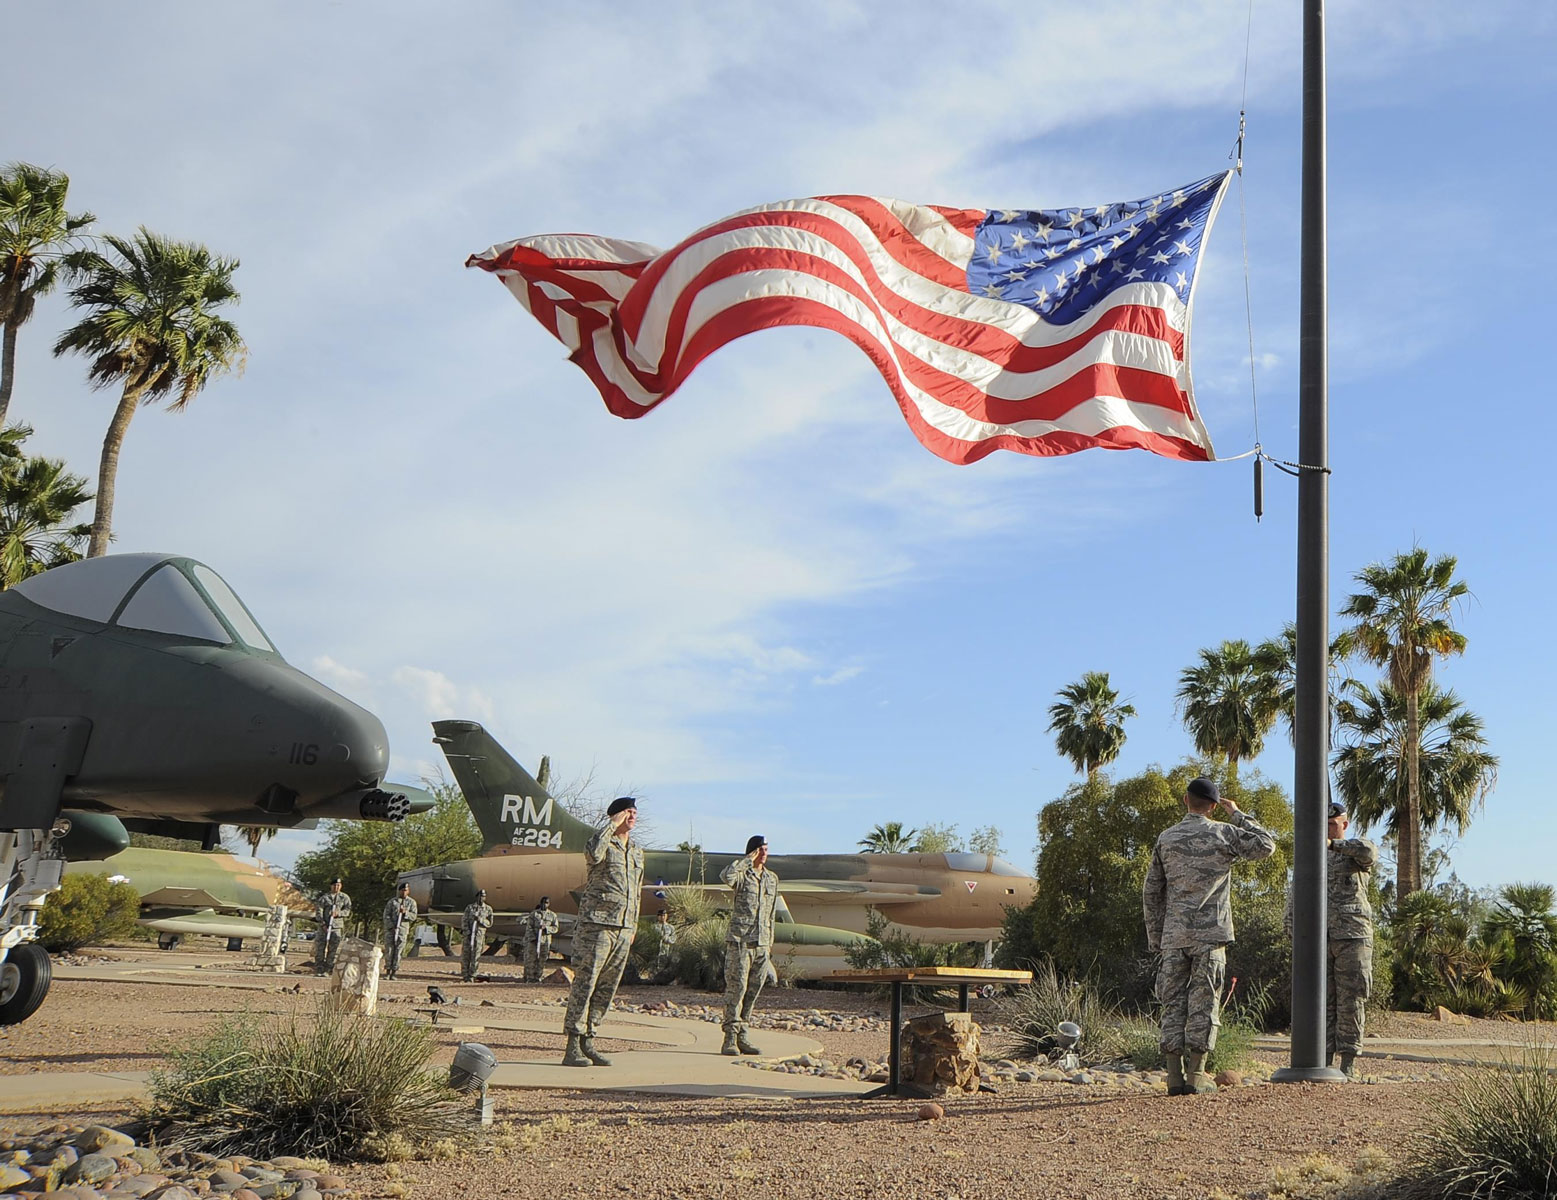 Airmen from the 355th Security Forces Squadron lower the American flag during a retreat ceremony for National Police Week at Davis-Monthan Air Force Base, Arizona, May 14. The retreat ceremony honored security forces and law enforcement members who have died in the line of duty.